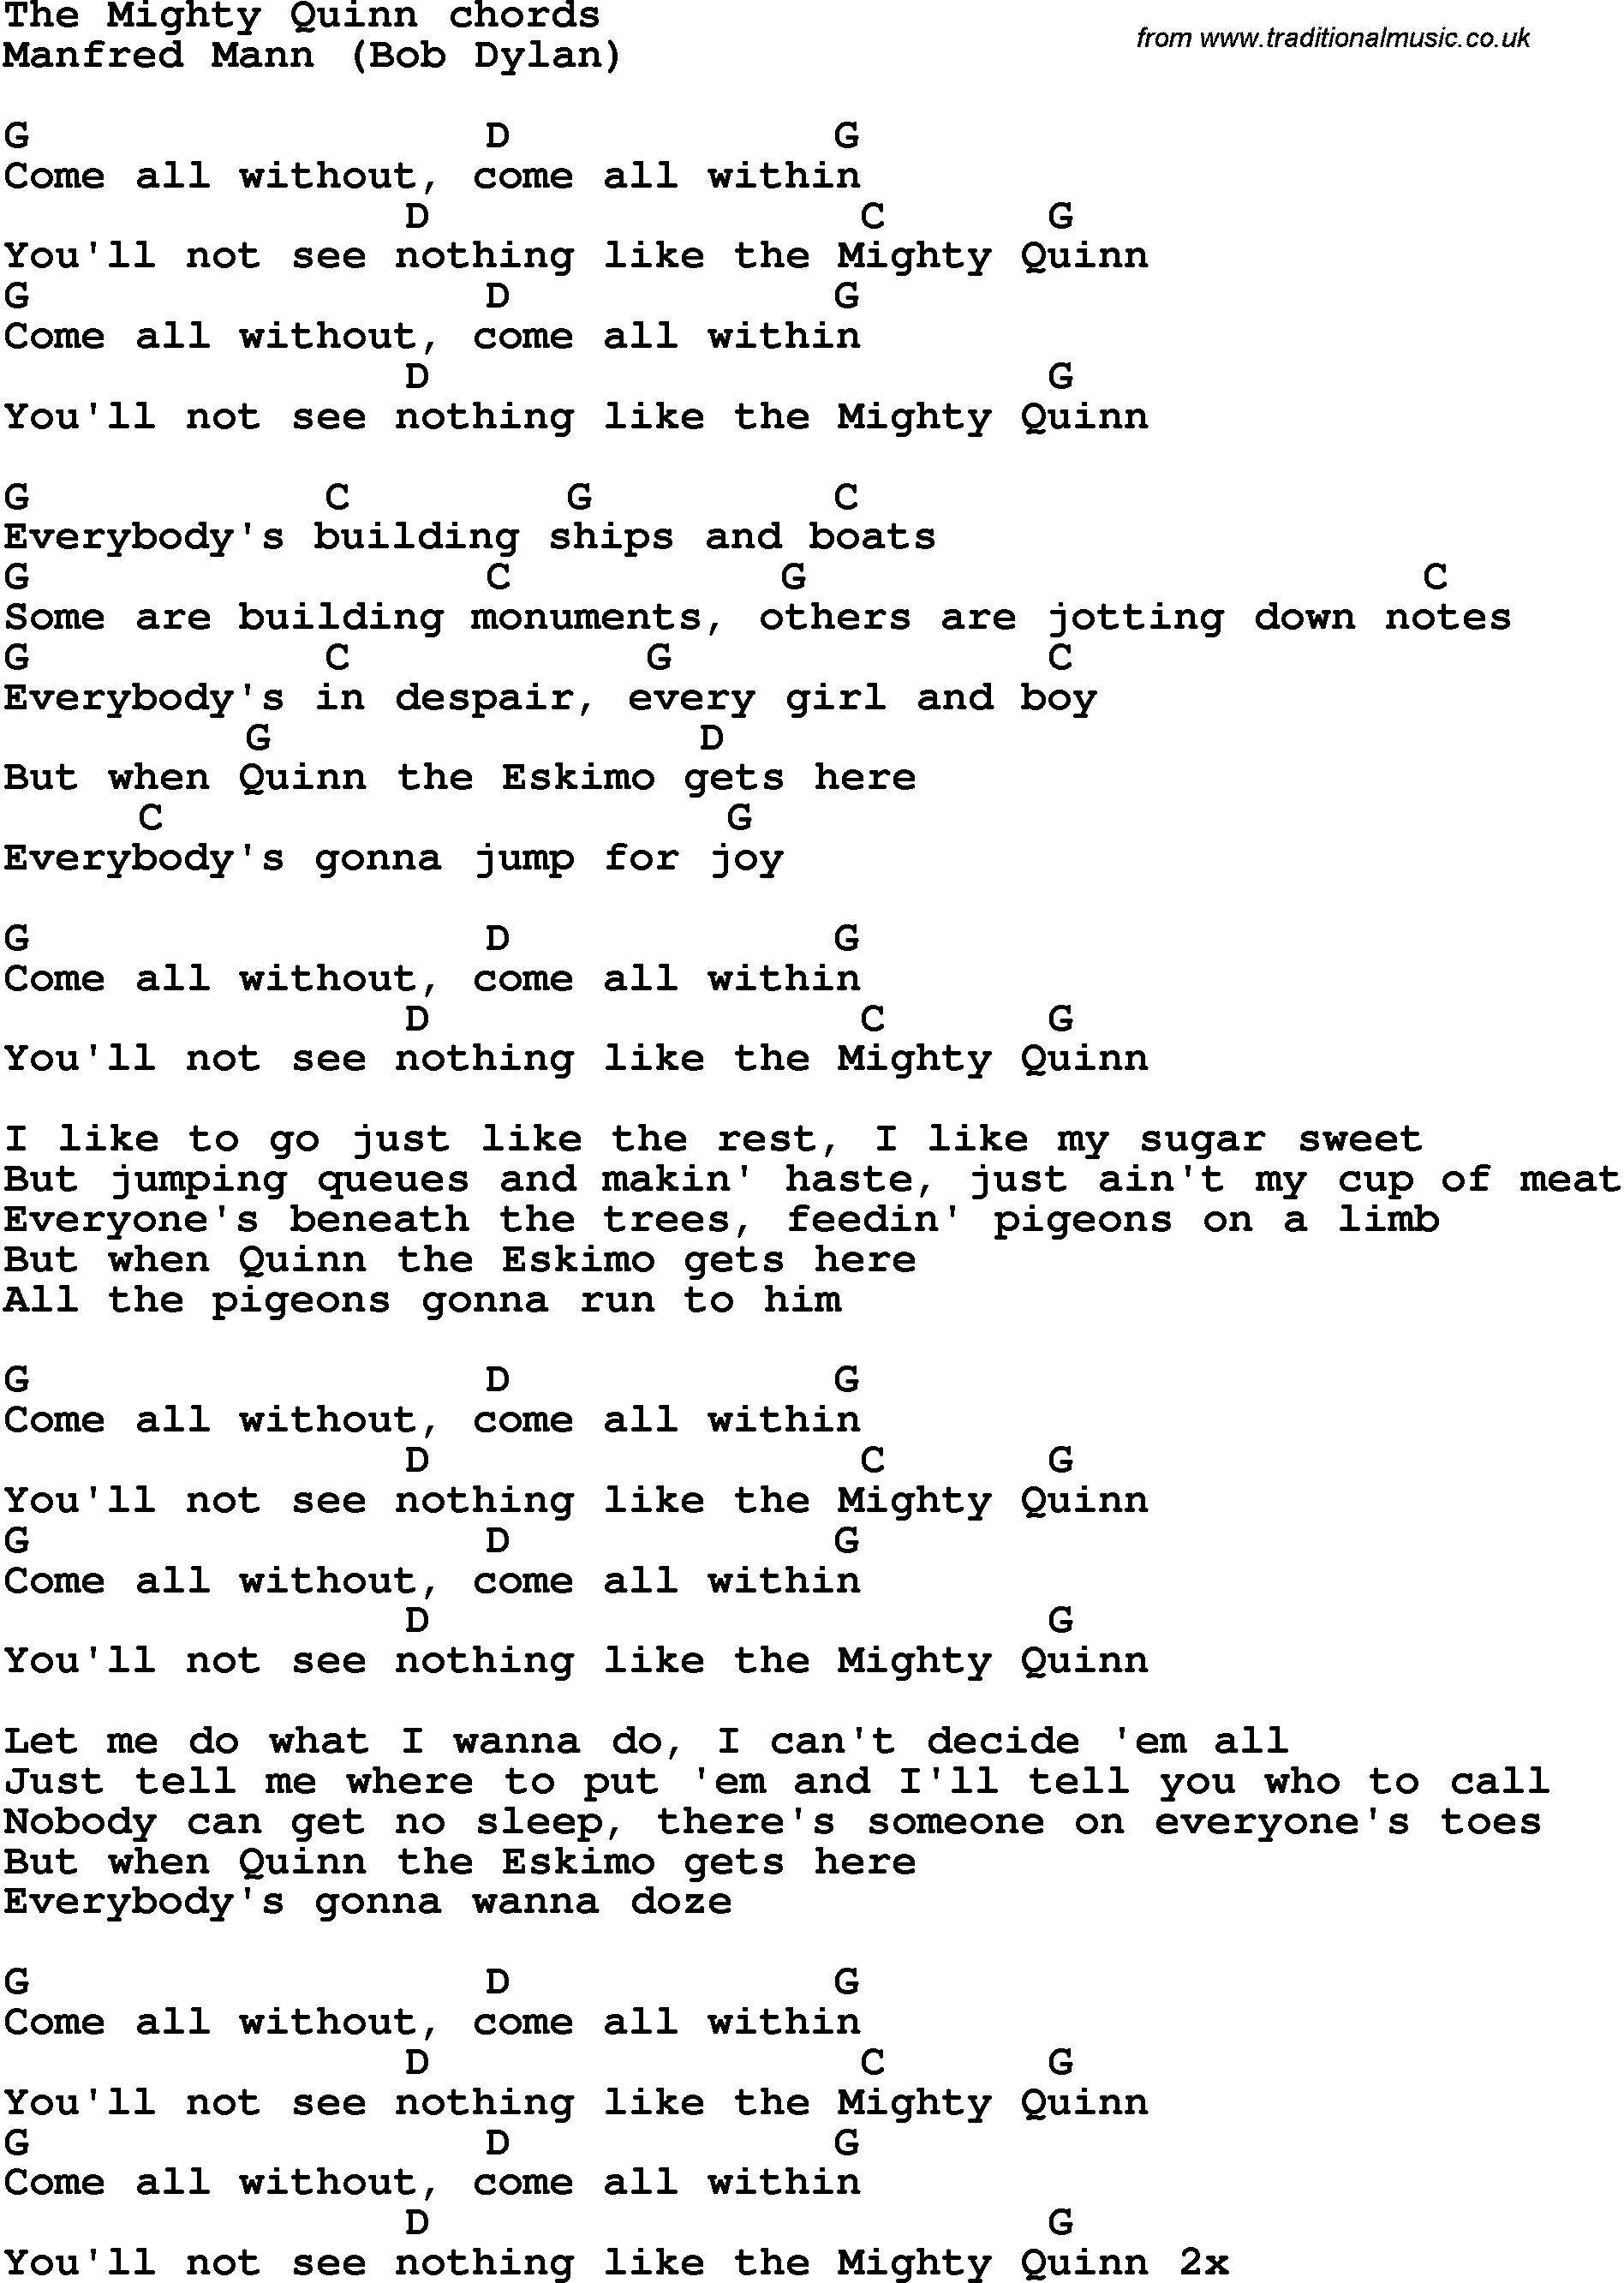 Song lyrics with guitar chords for the mighty quinn manfred mann mandolin hexwebz Images